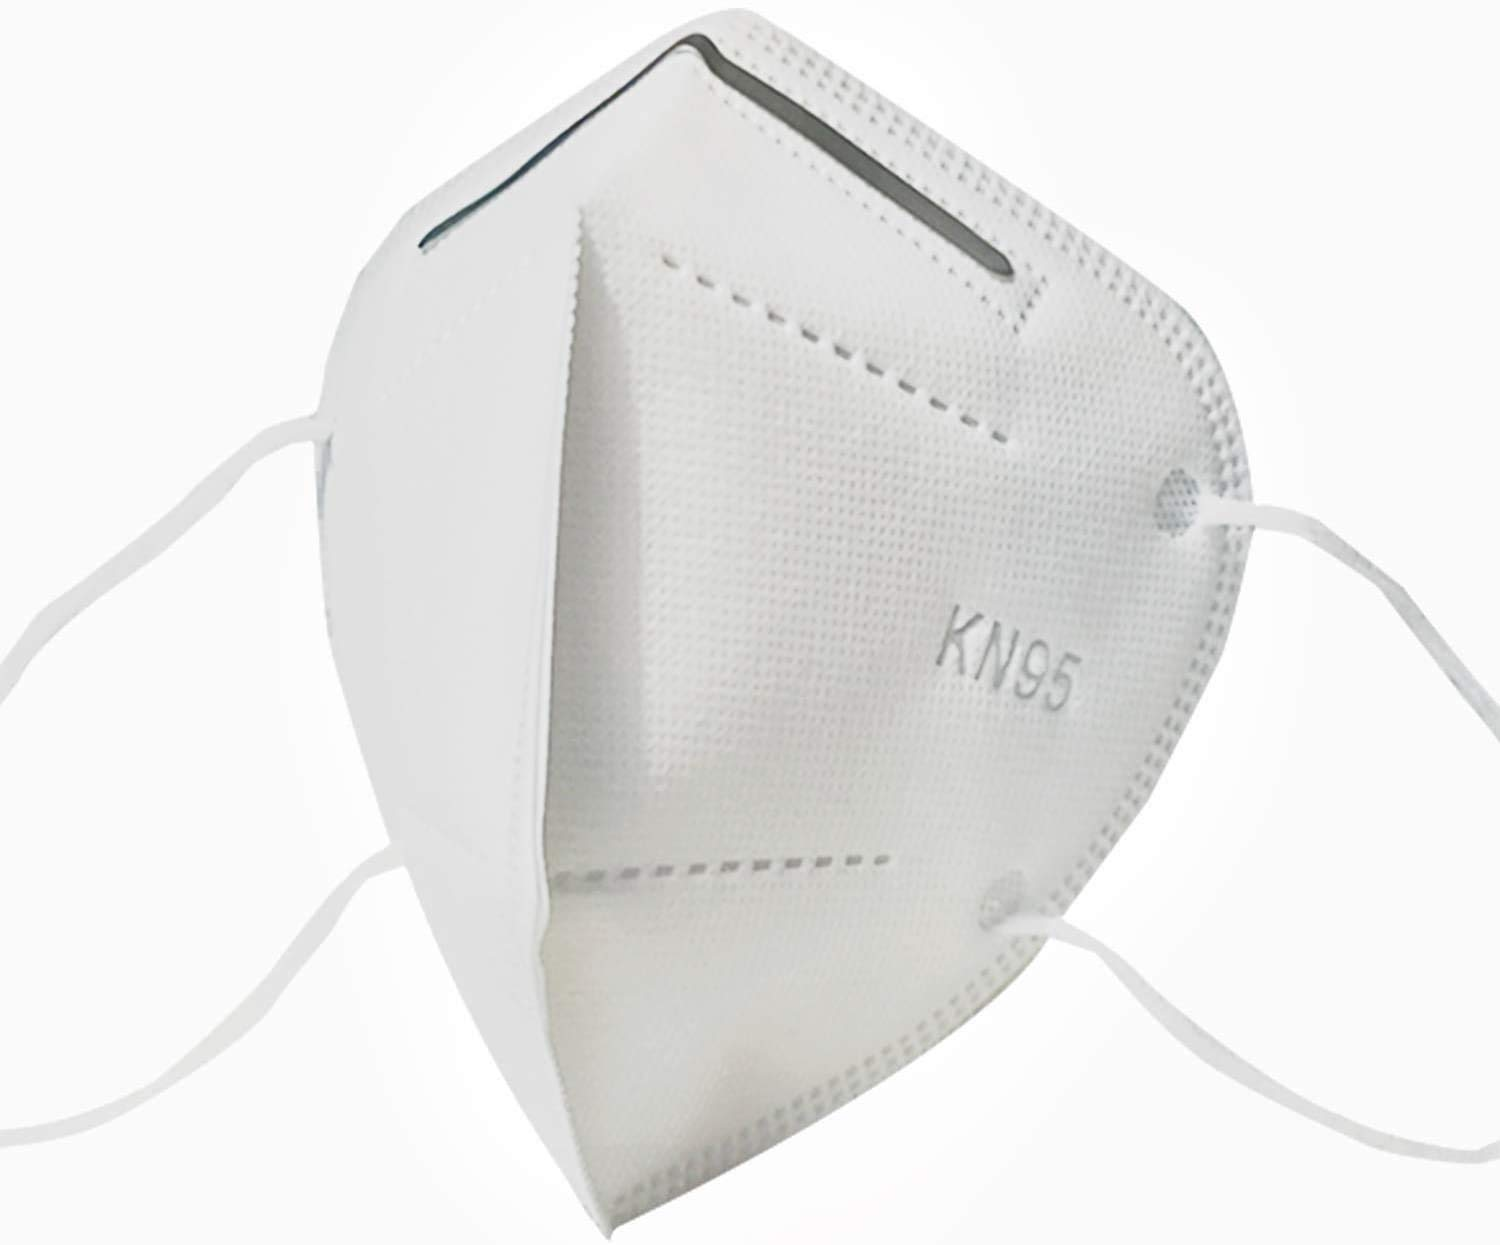 atongm KN95 Face Masks, (Pack -10 pcs) 5 Ply Anti-Pollution Mask, Unisex Mouth Face Mask Flat Fold (White)